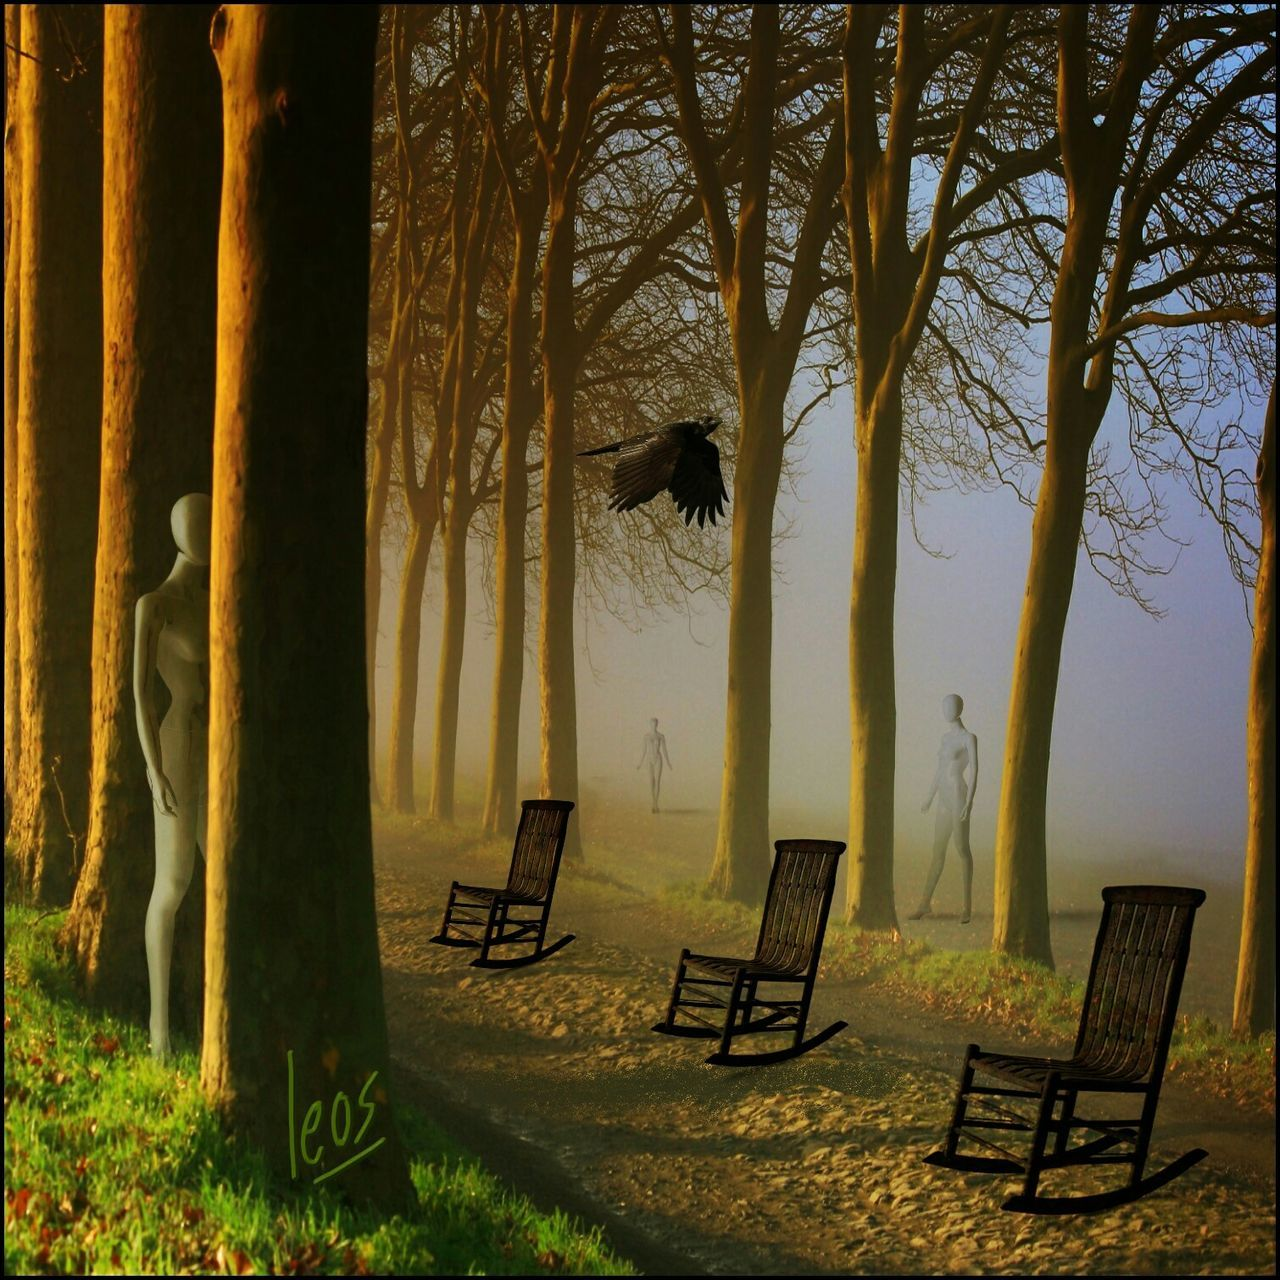 chair, tree, tranquility, nature, tree trunk, landscape, day, outdoors, no people, beauty in nature, scenics, grass, sky